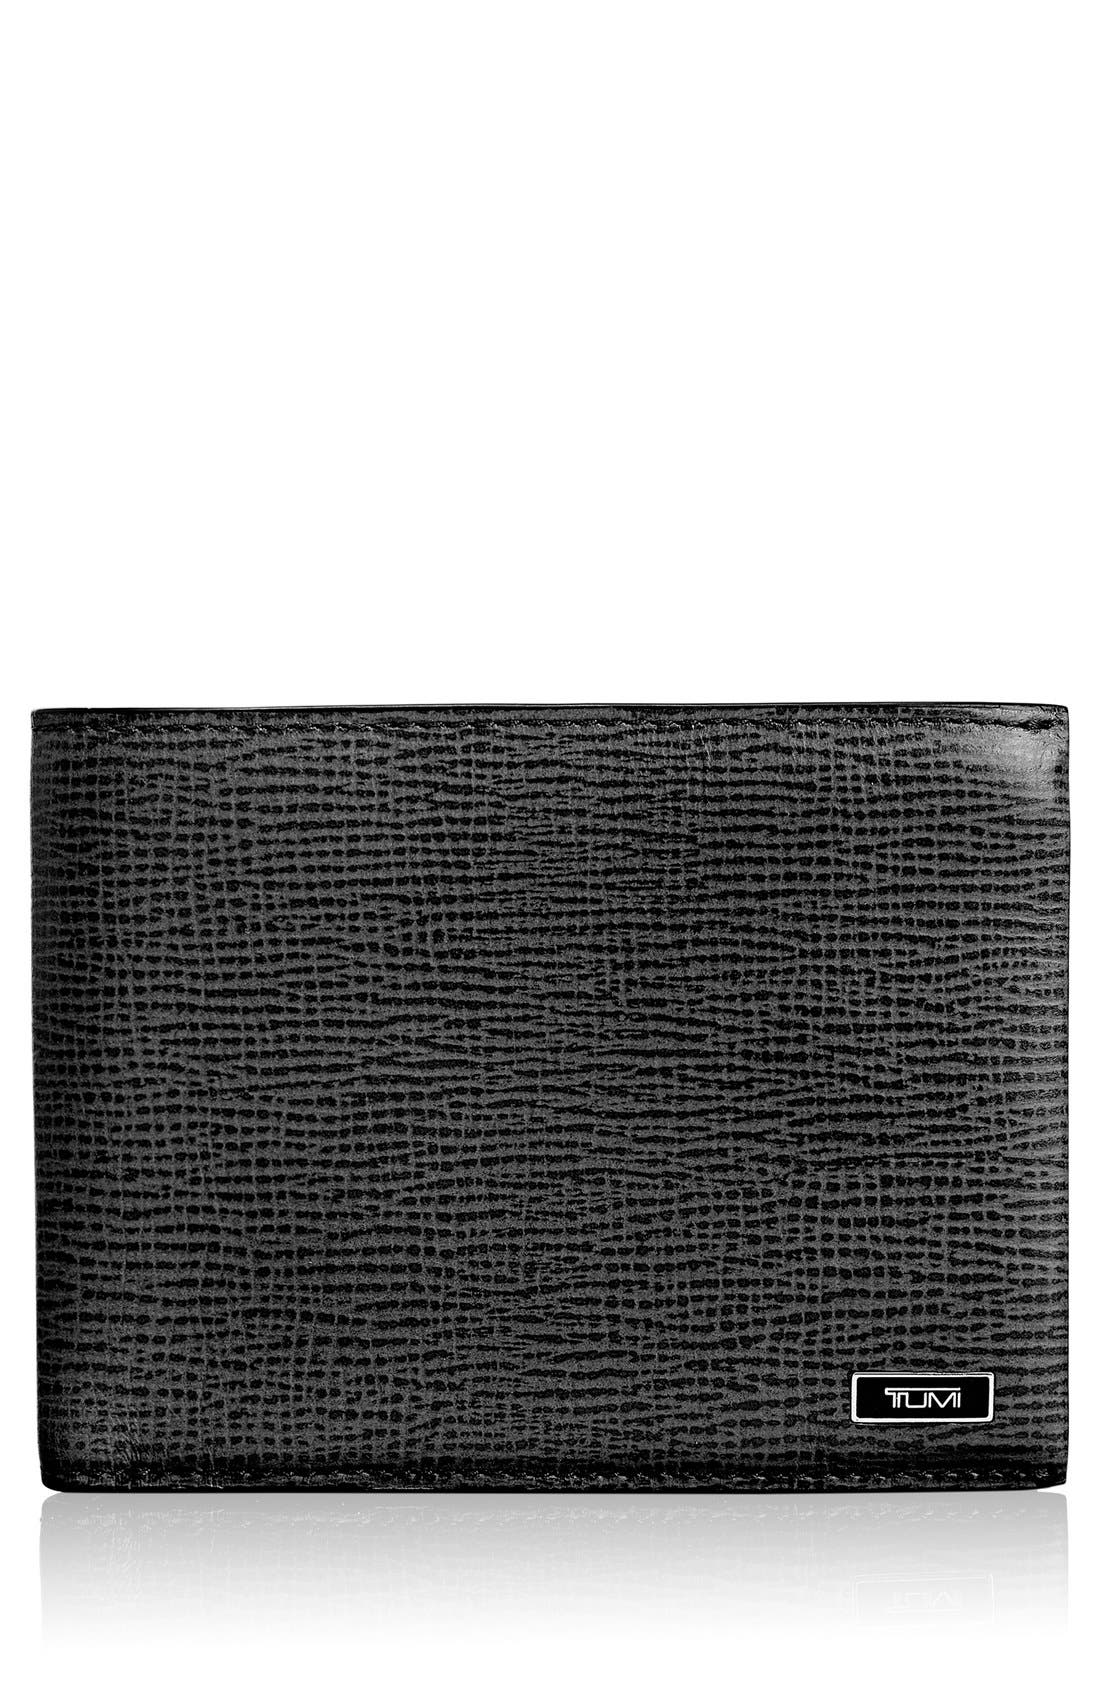 TUMI Monaco Global Billfold Wallet